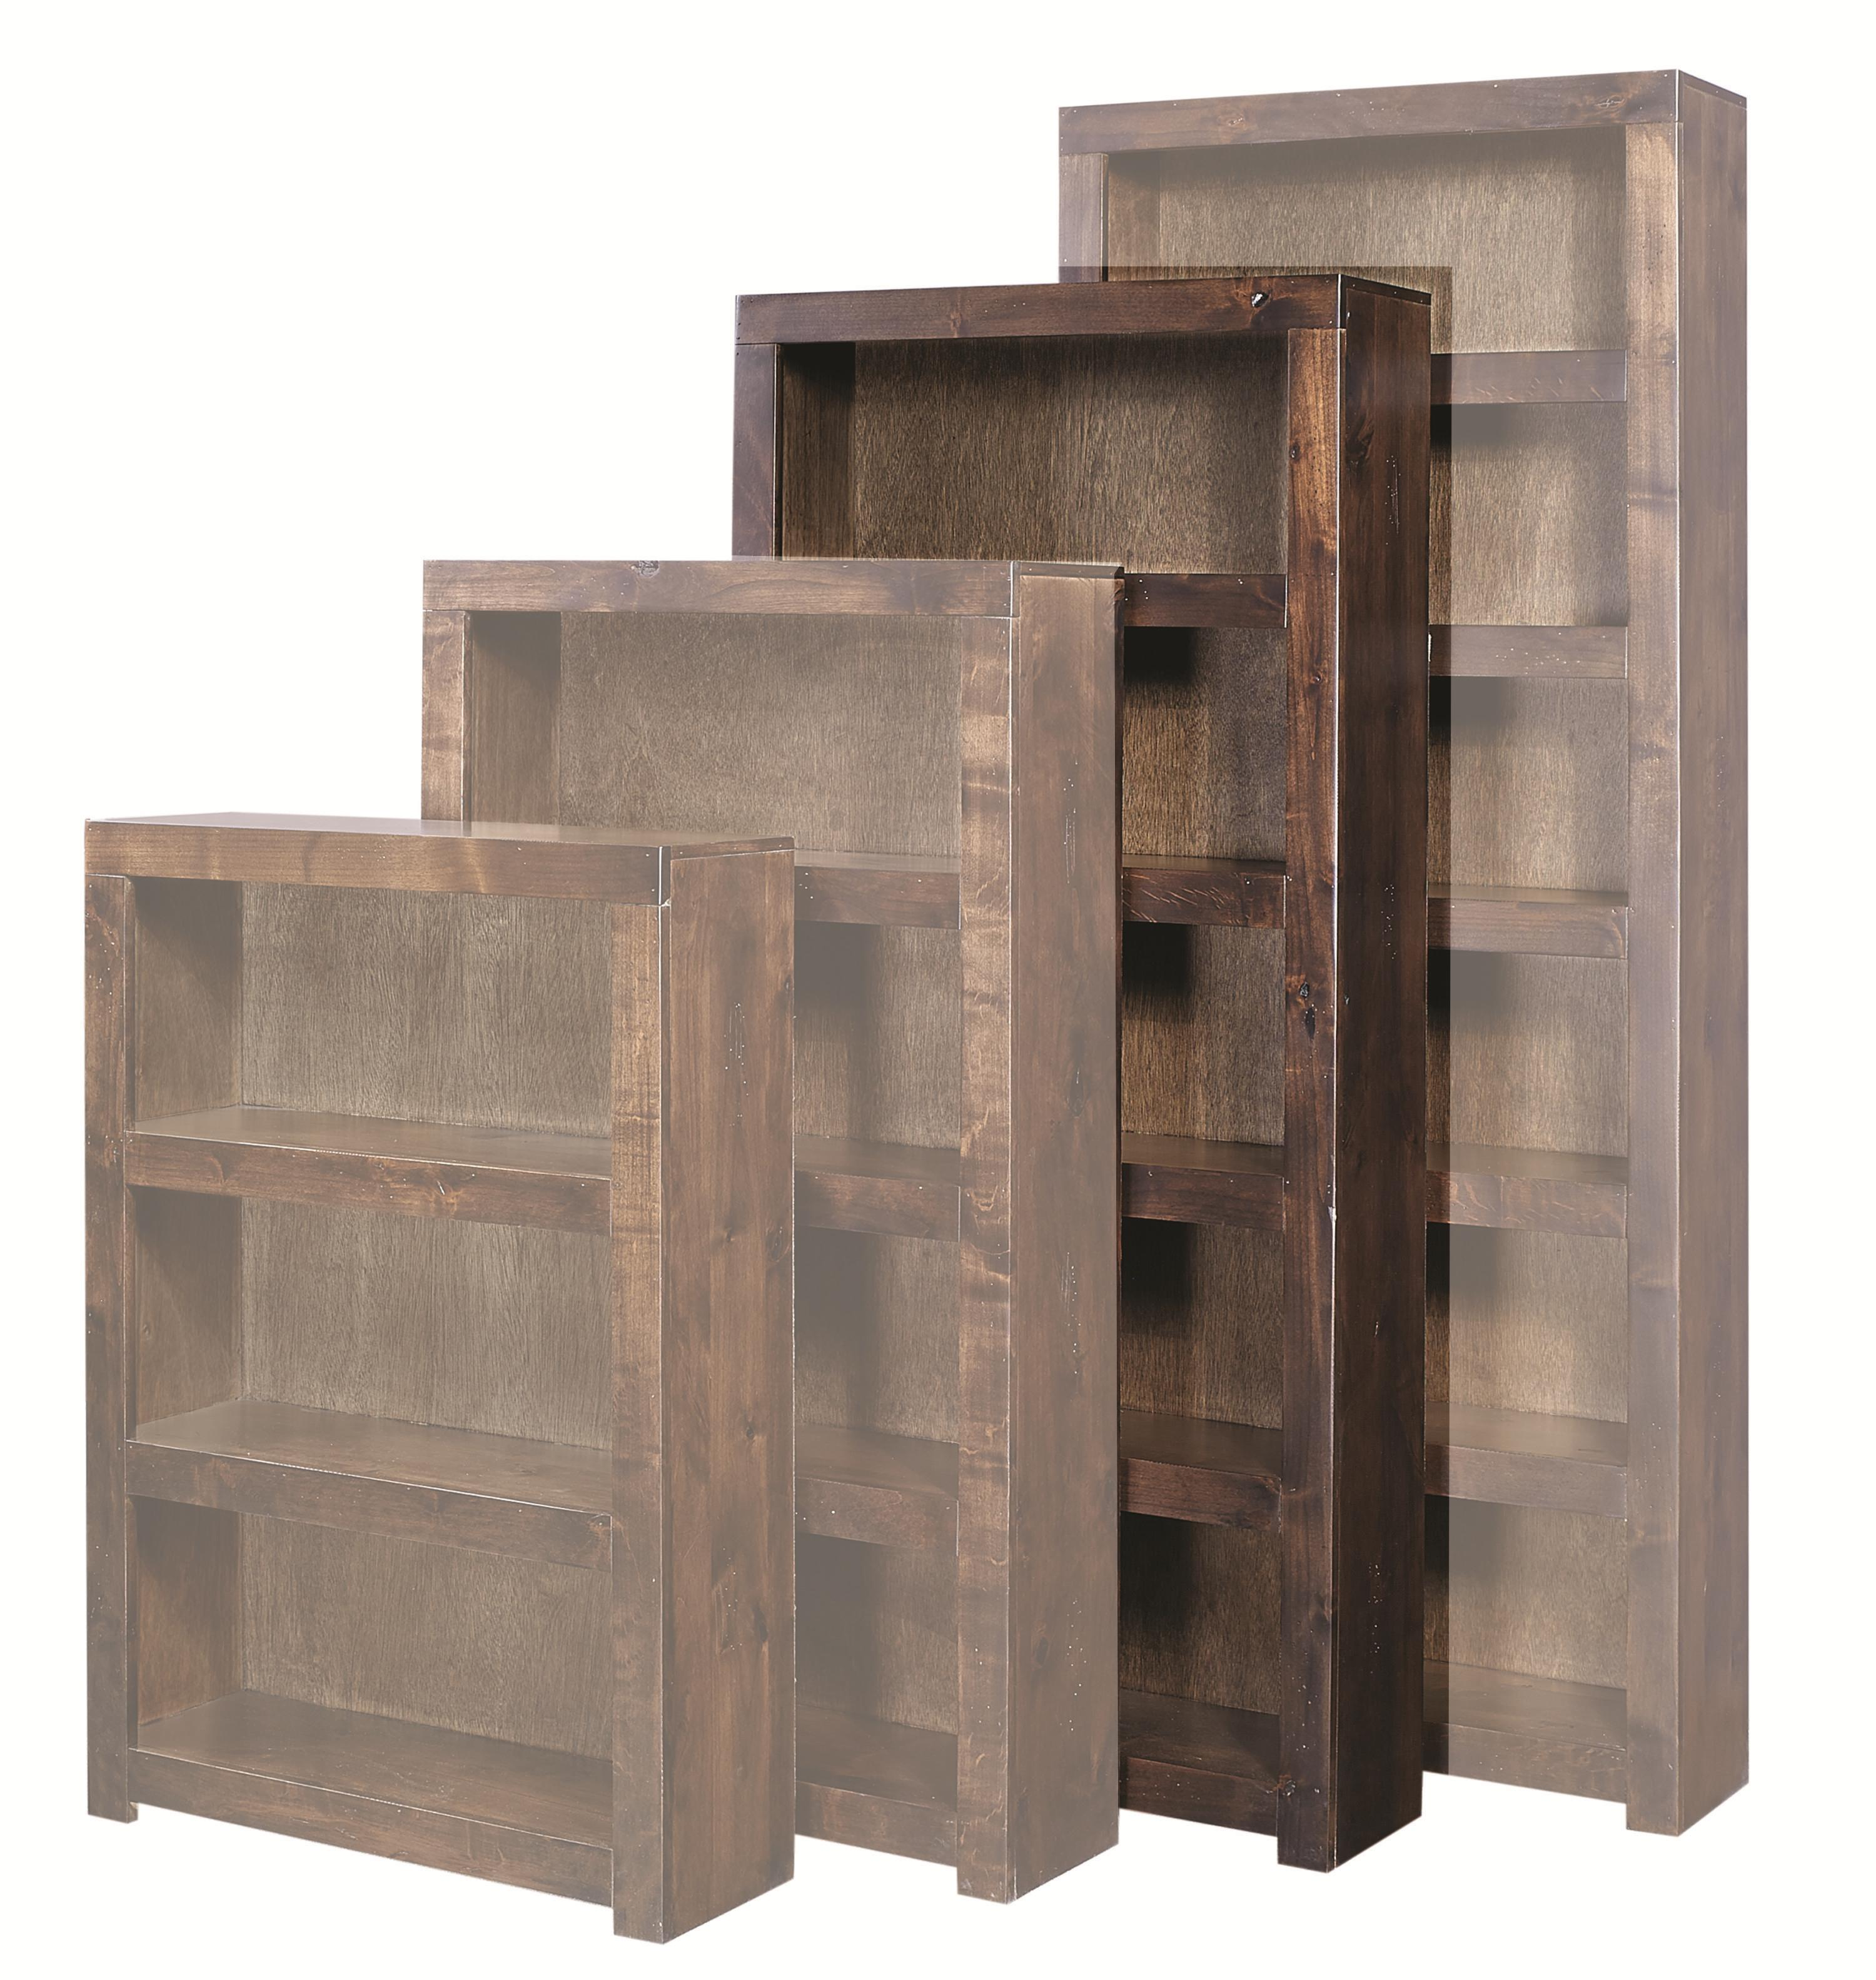 Aspenhome Contemporary Alder 72 Inch Bookcase - Item Number: DL3472-TOB